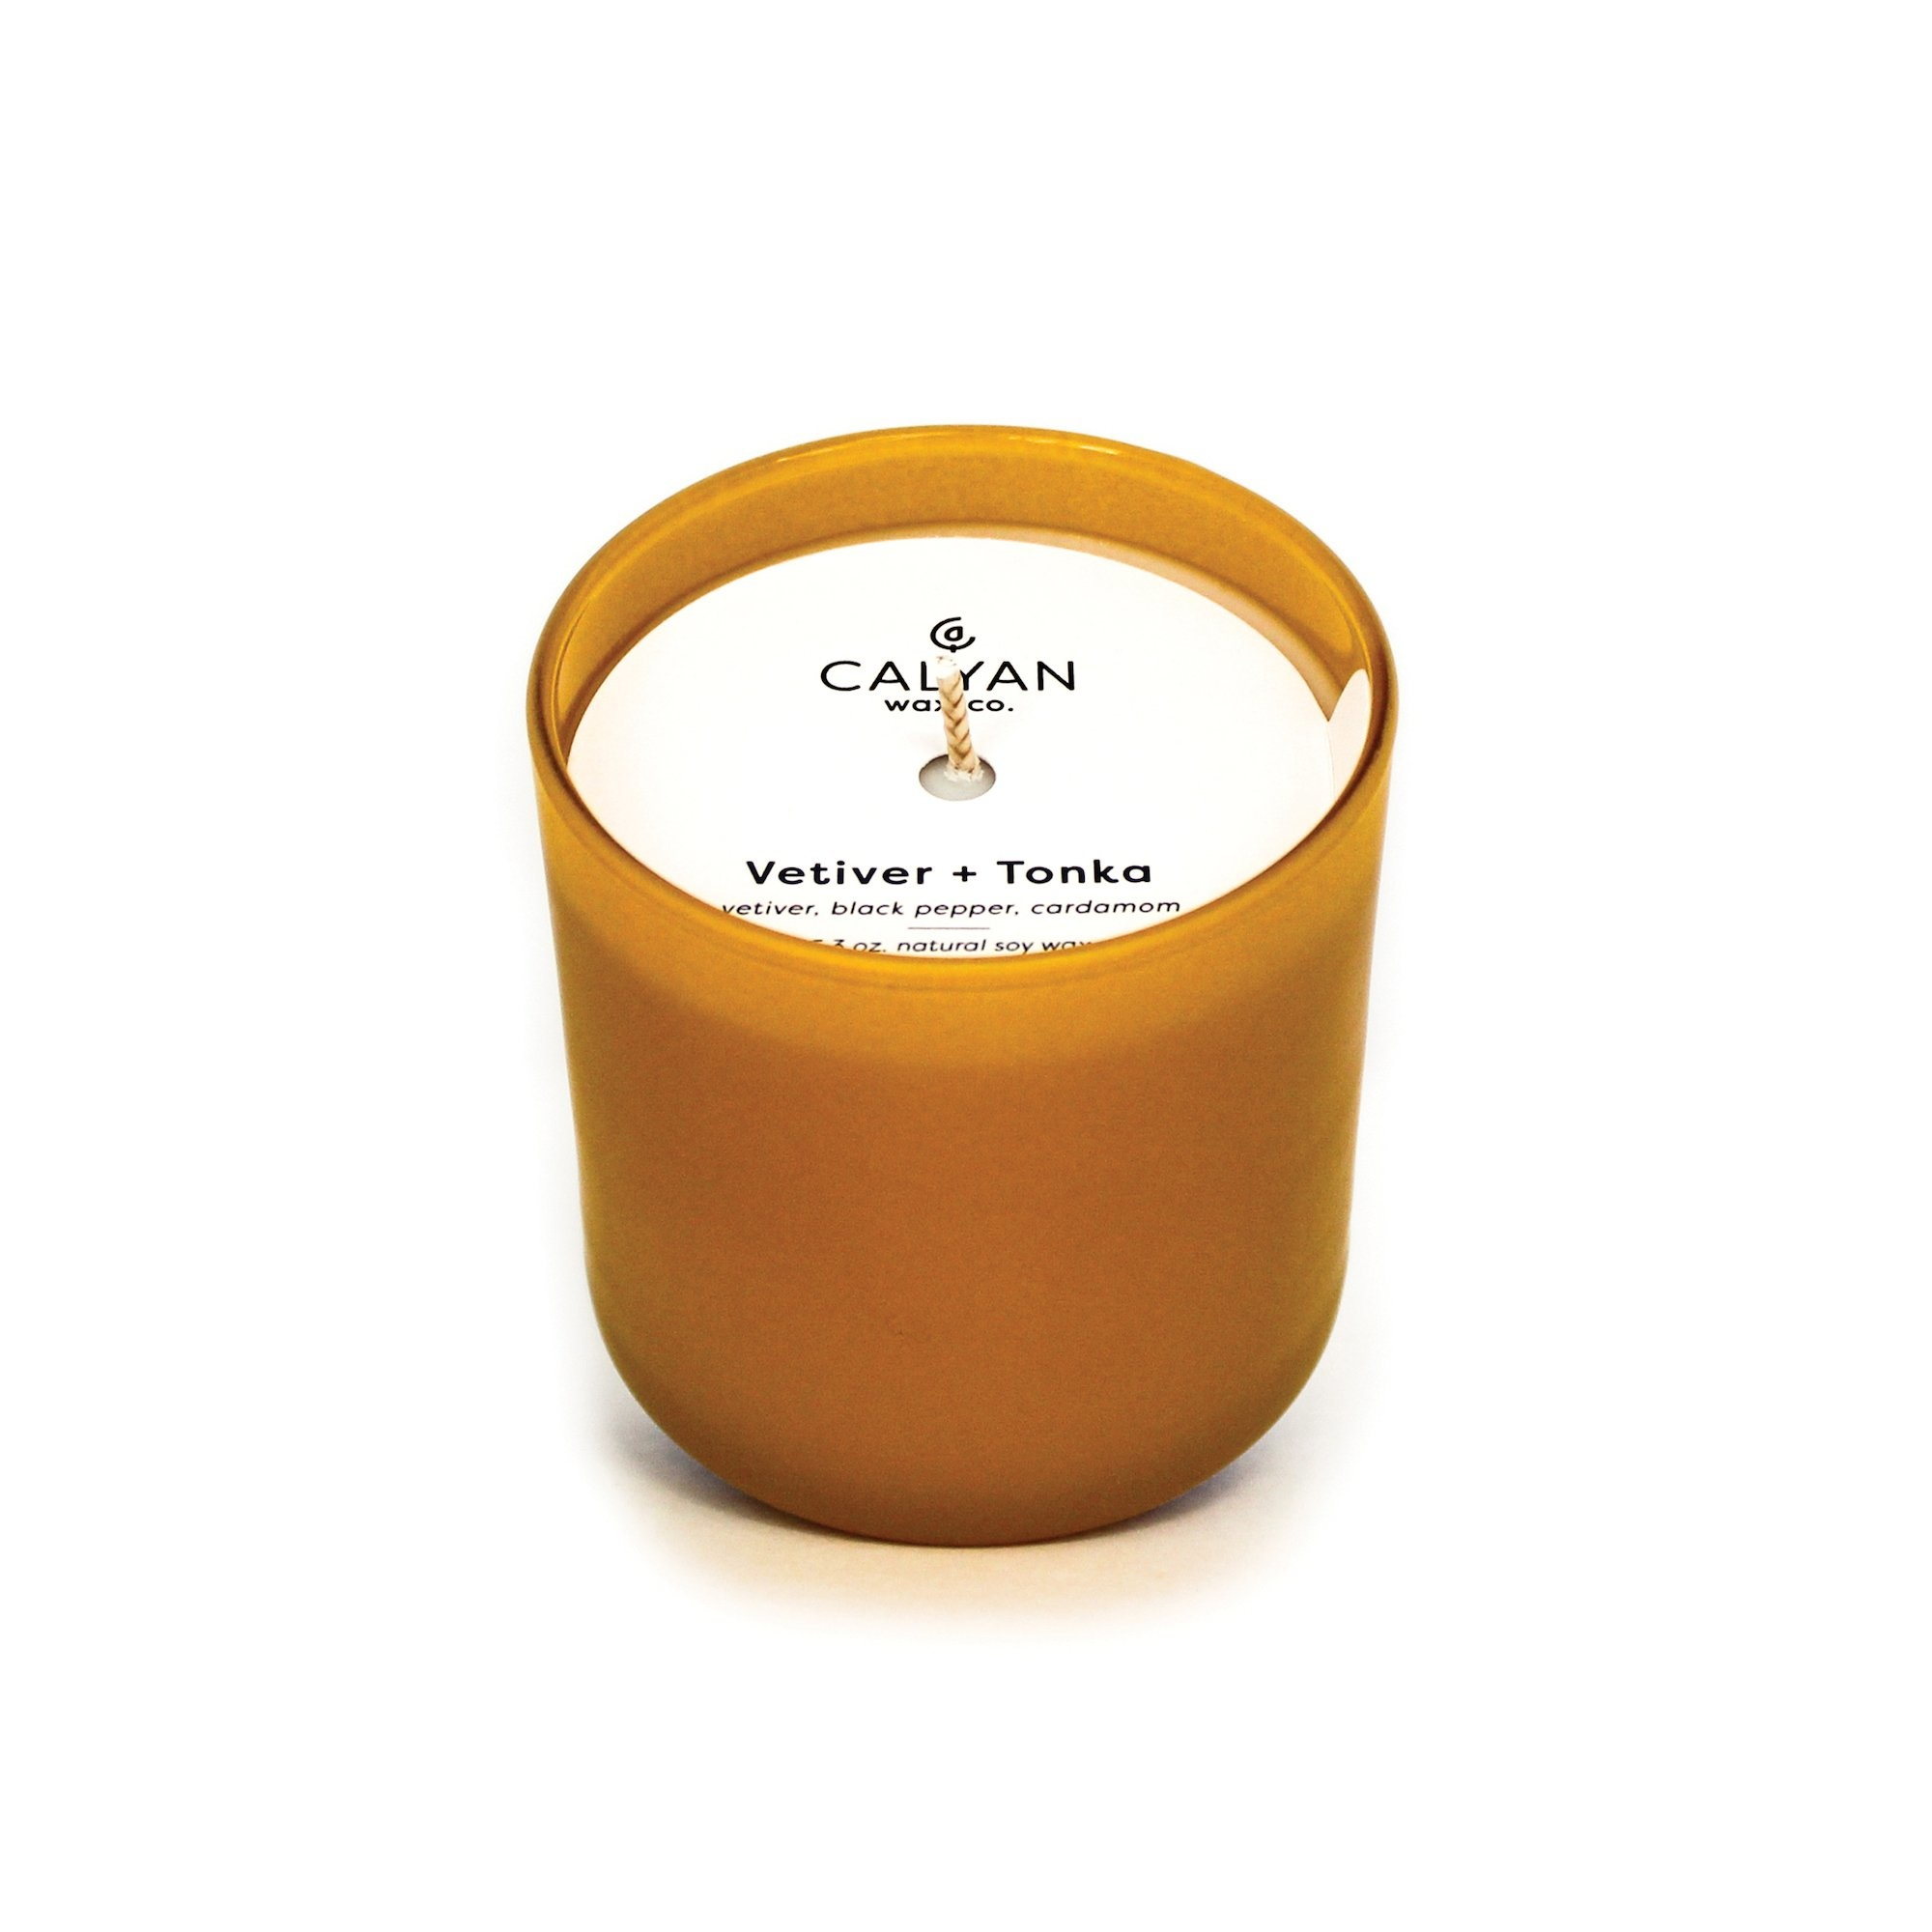 Vetiver + Tonka Dignity Series Soy Candle